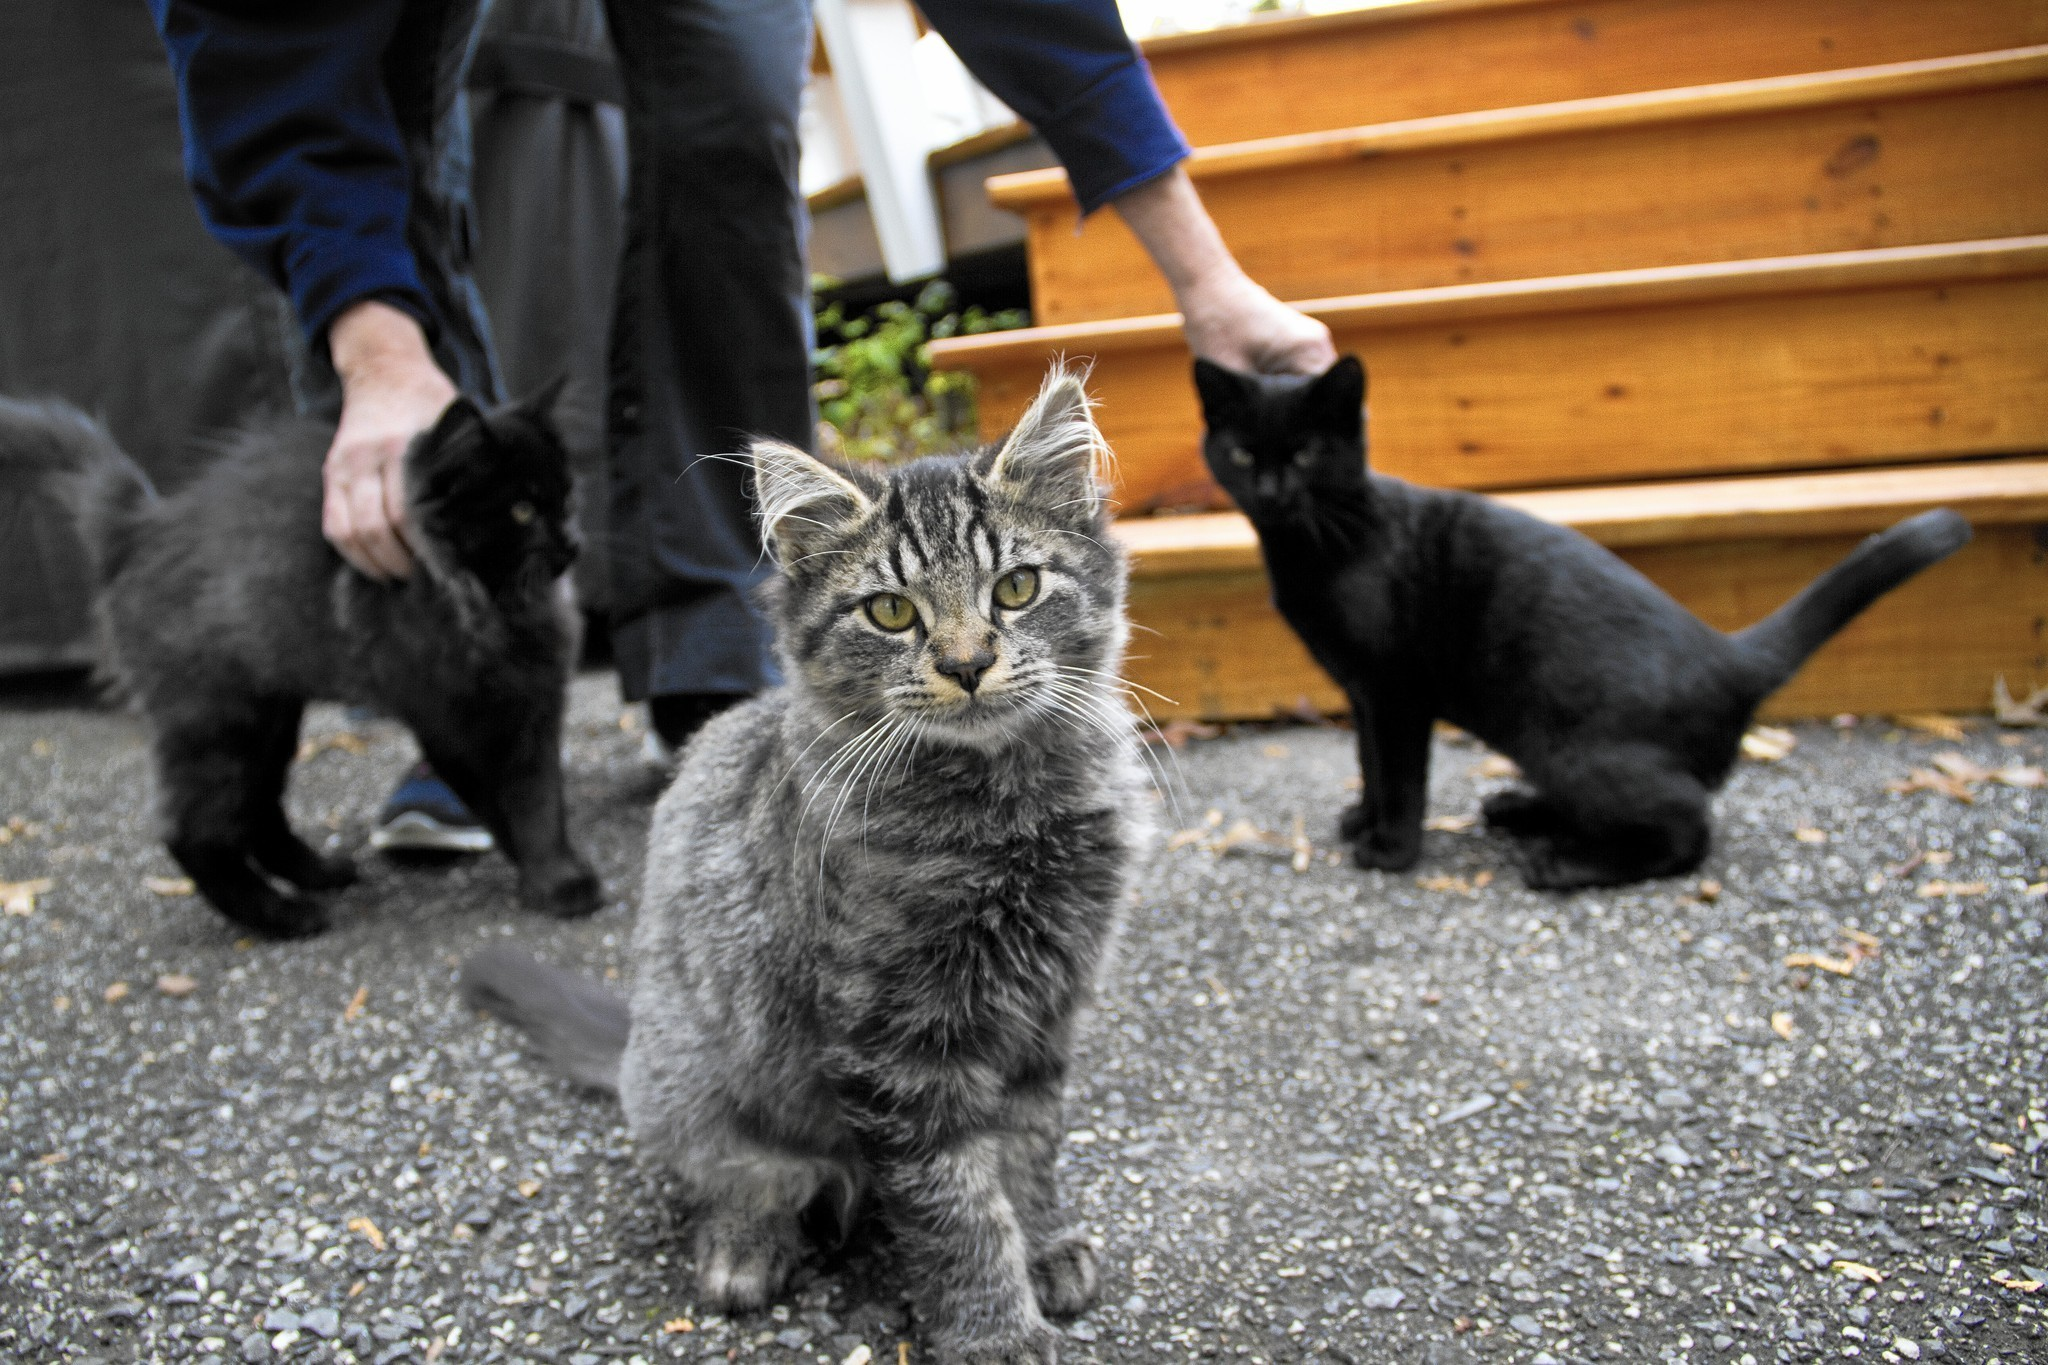 stray cat population becomes problematic for arbutus neighborhood